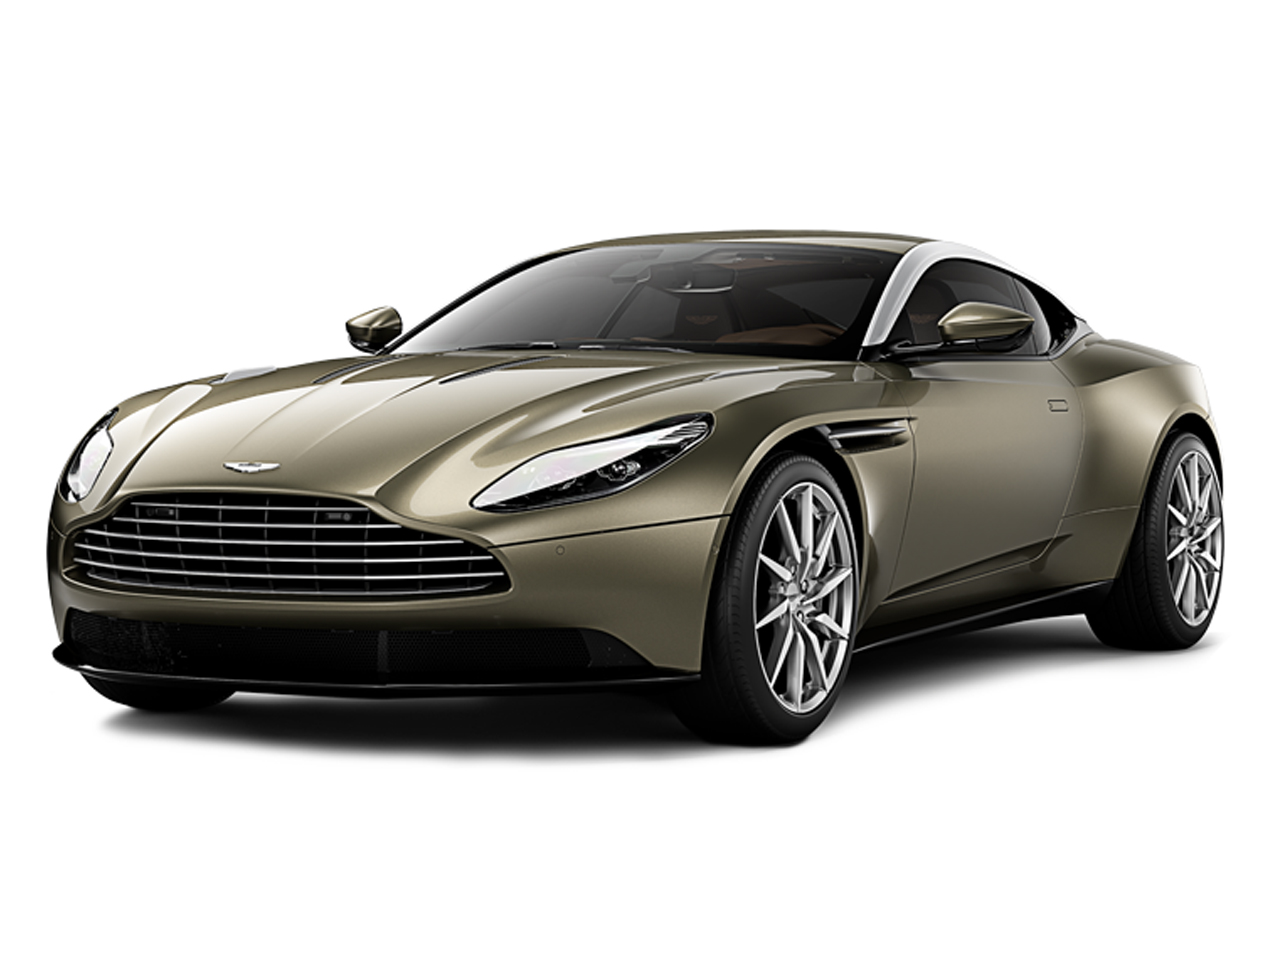 2018 aston martin db11 prices in uae, gulf specs & reviews for